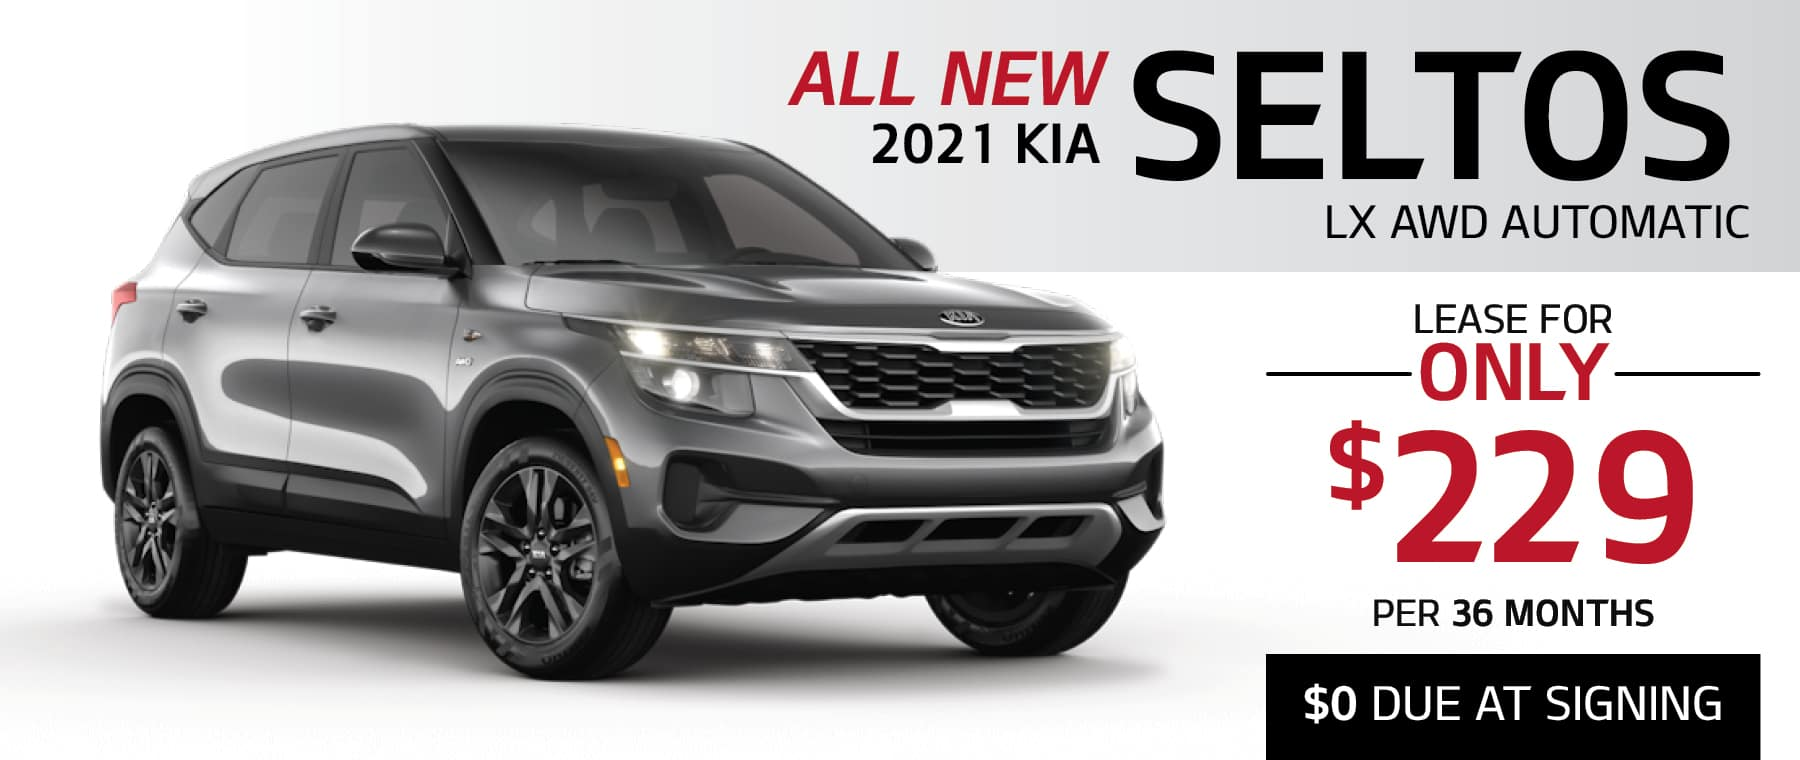 2021 Kia Seltos LX AWD Automatic lease for $229 per month for 36 months with $0 Due at Signing